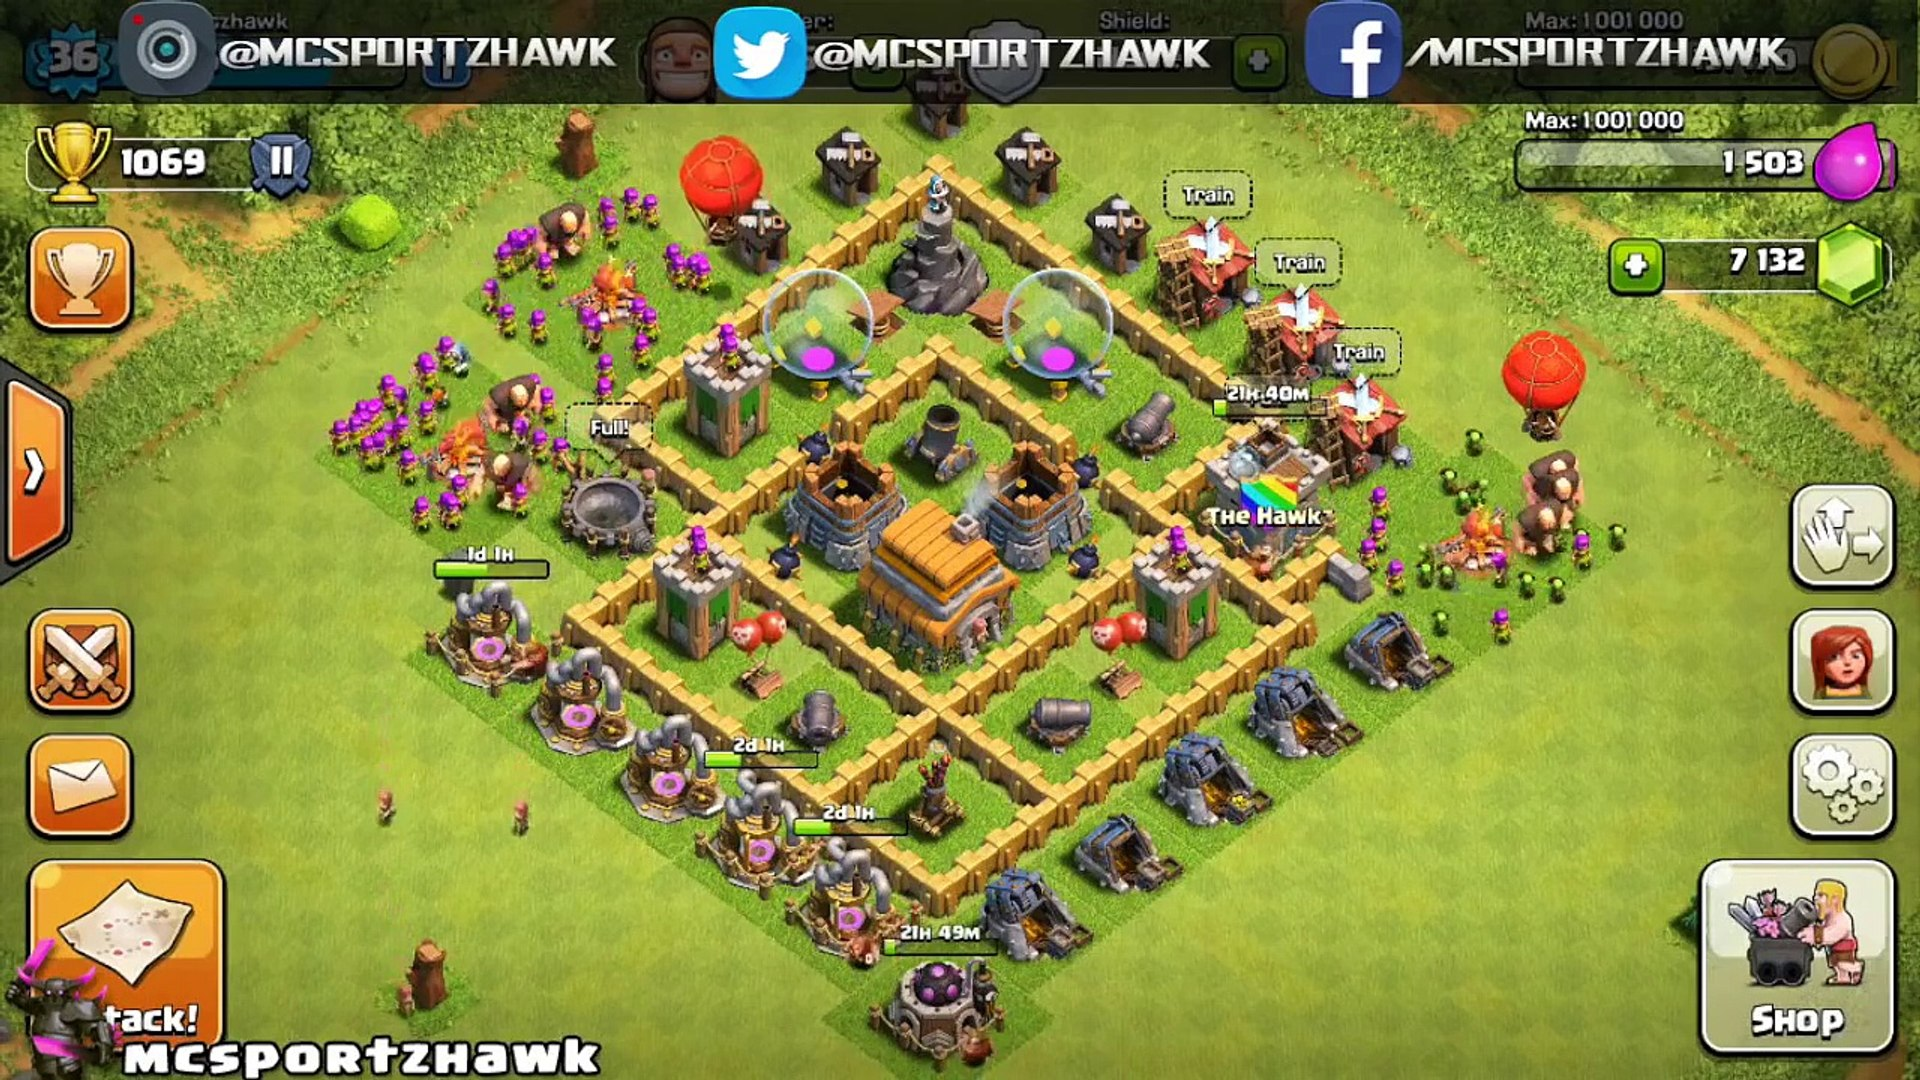 Clash of Clans - BEST DEFENSE STRATEGY - Townhall Level 5 (CoC TH5 Defense  Strategies)